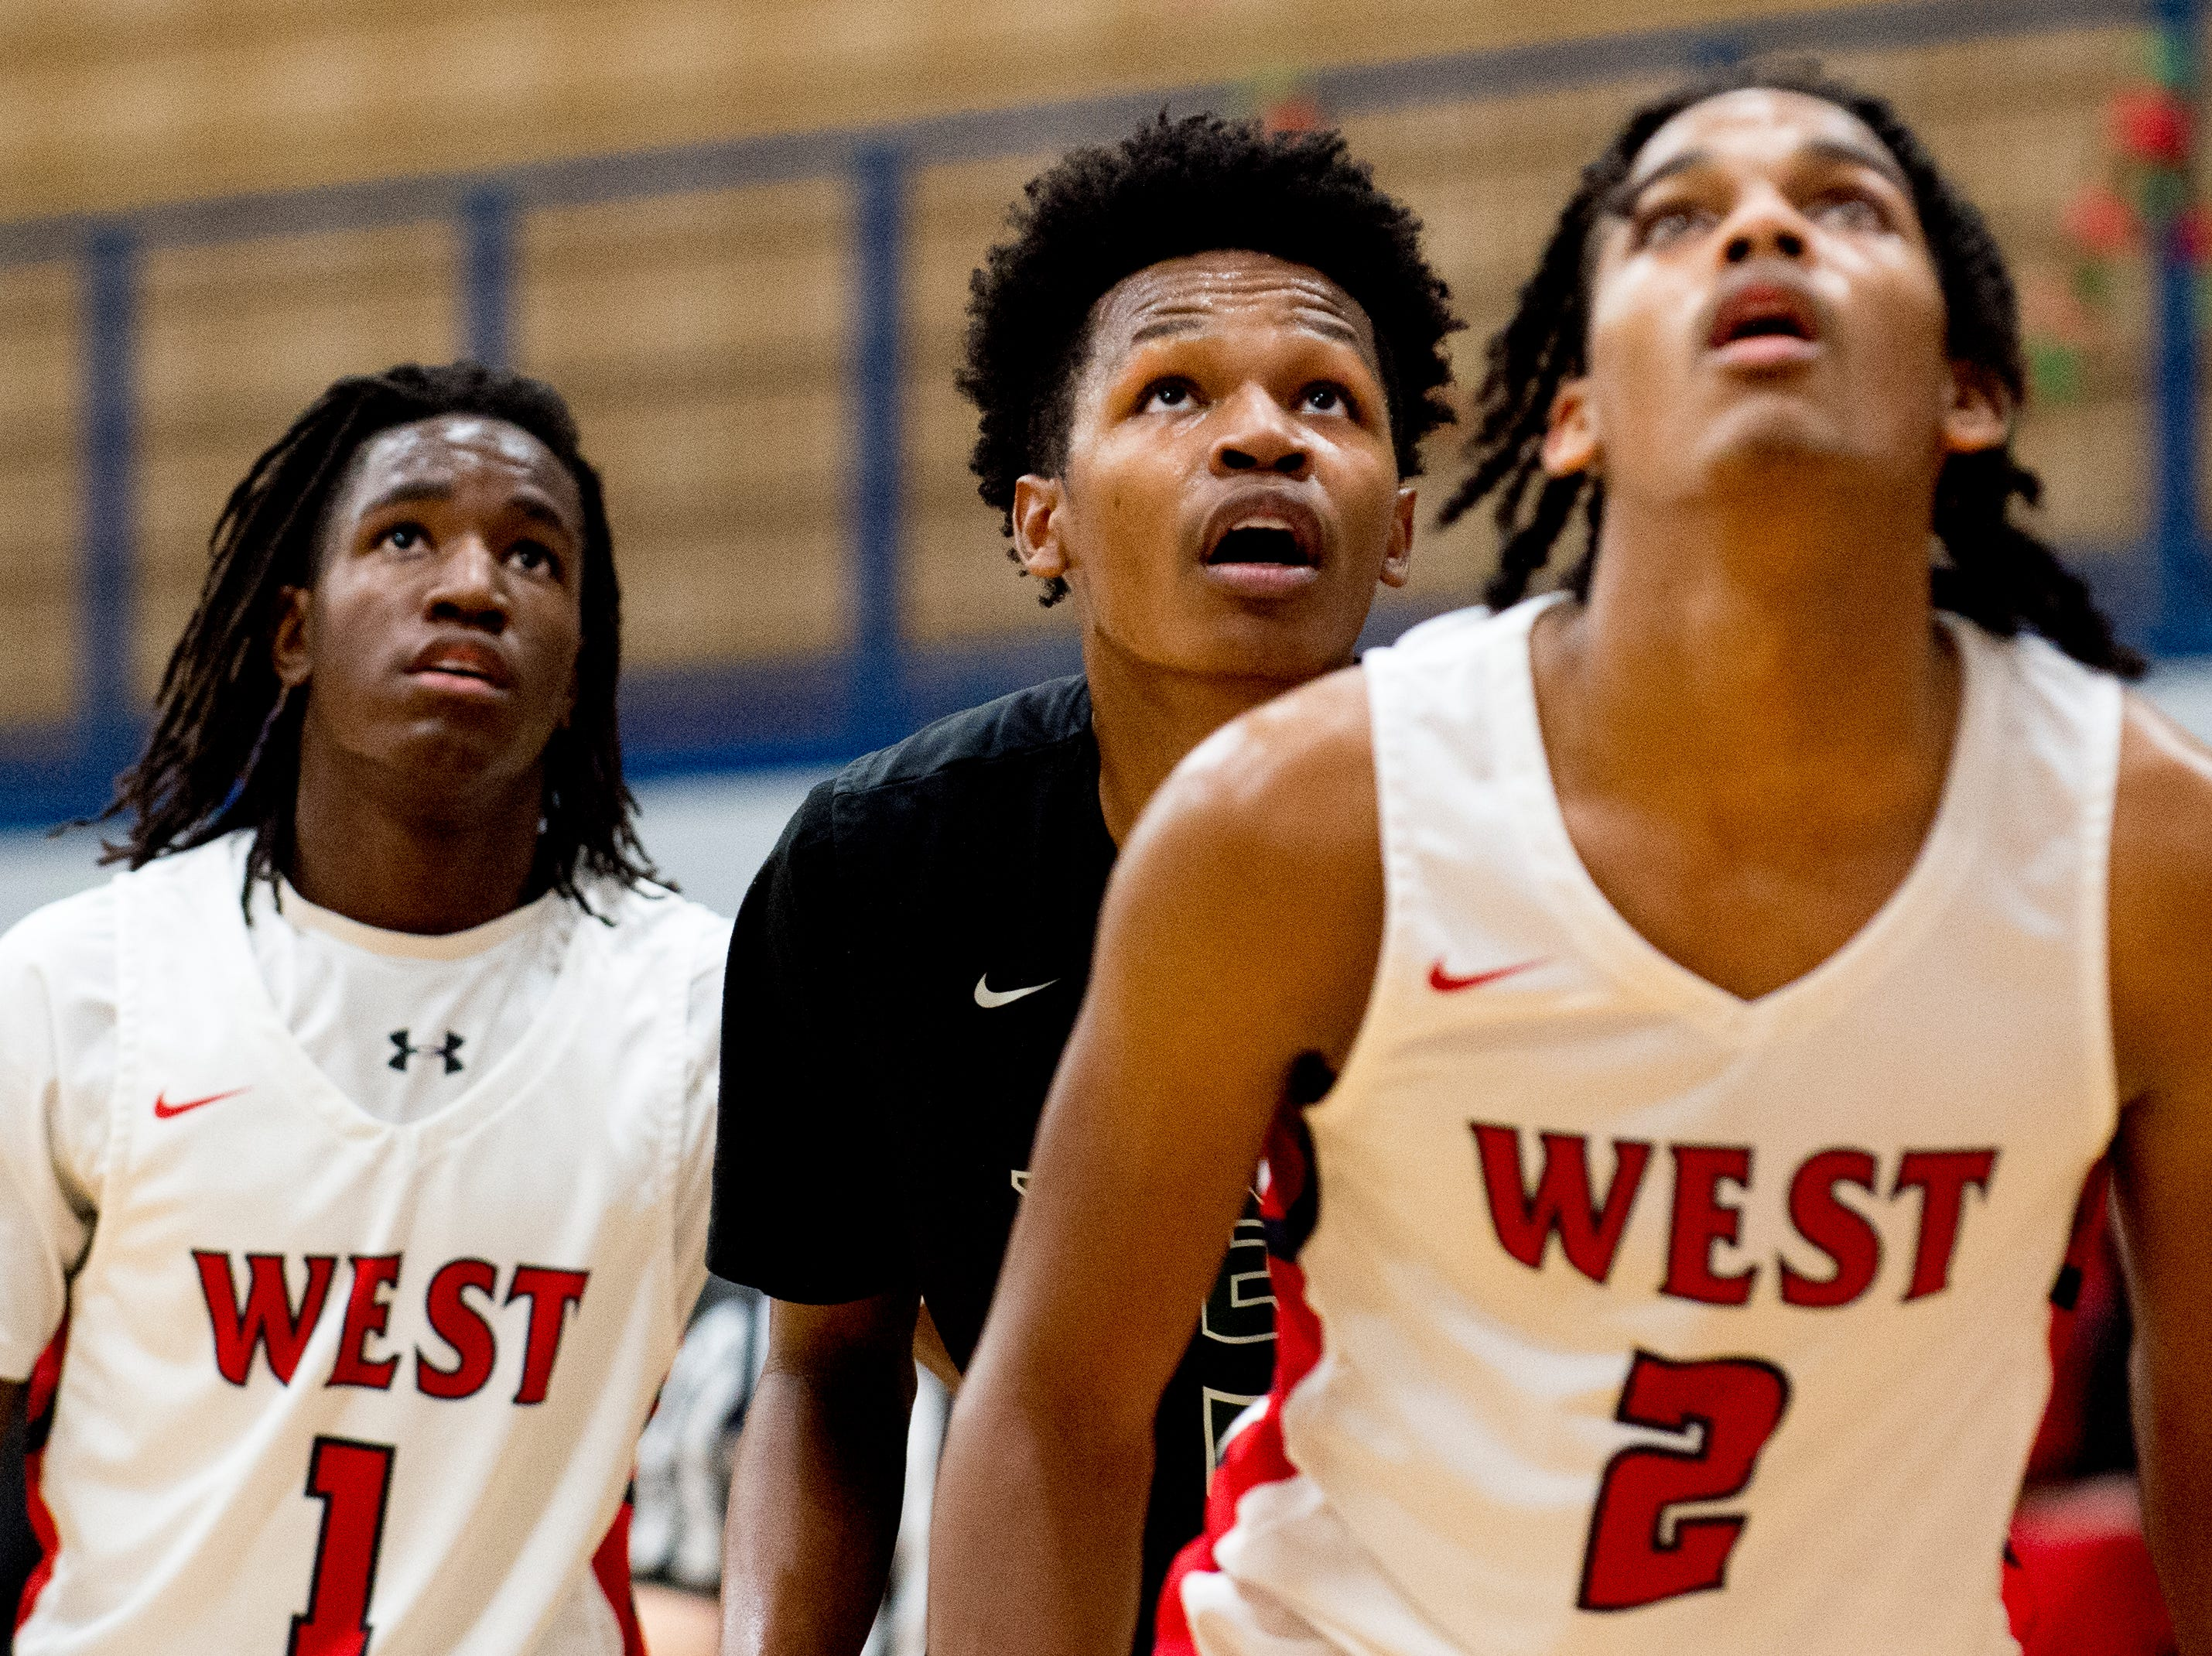 Webb's Tariq Daughter (5) eyes the ball with West's Michael Webb (1) and Cedarius Bost (2) during a game between West and Webb at West High School in Knoxville, Tennessee on Friday, January 4, 2019.